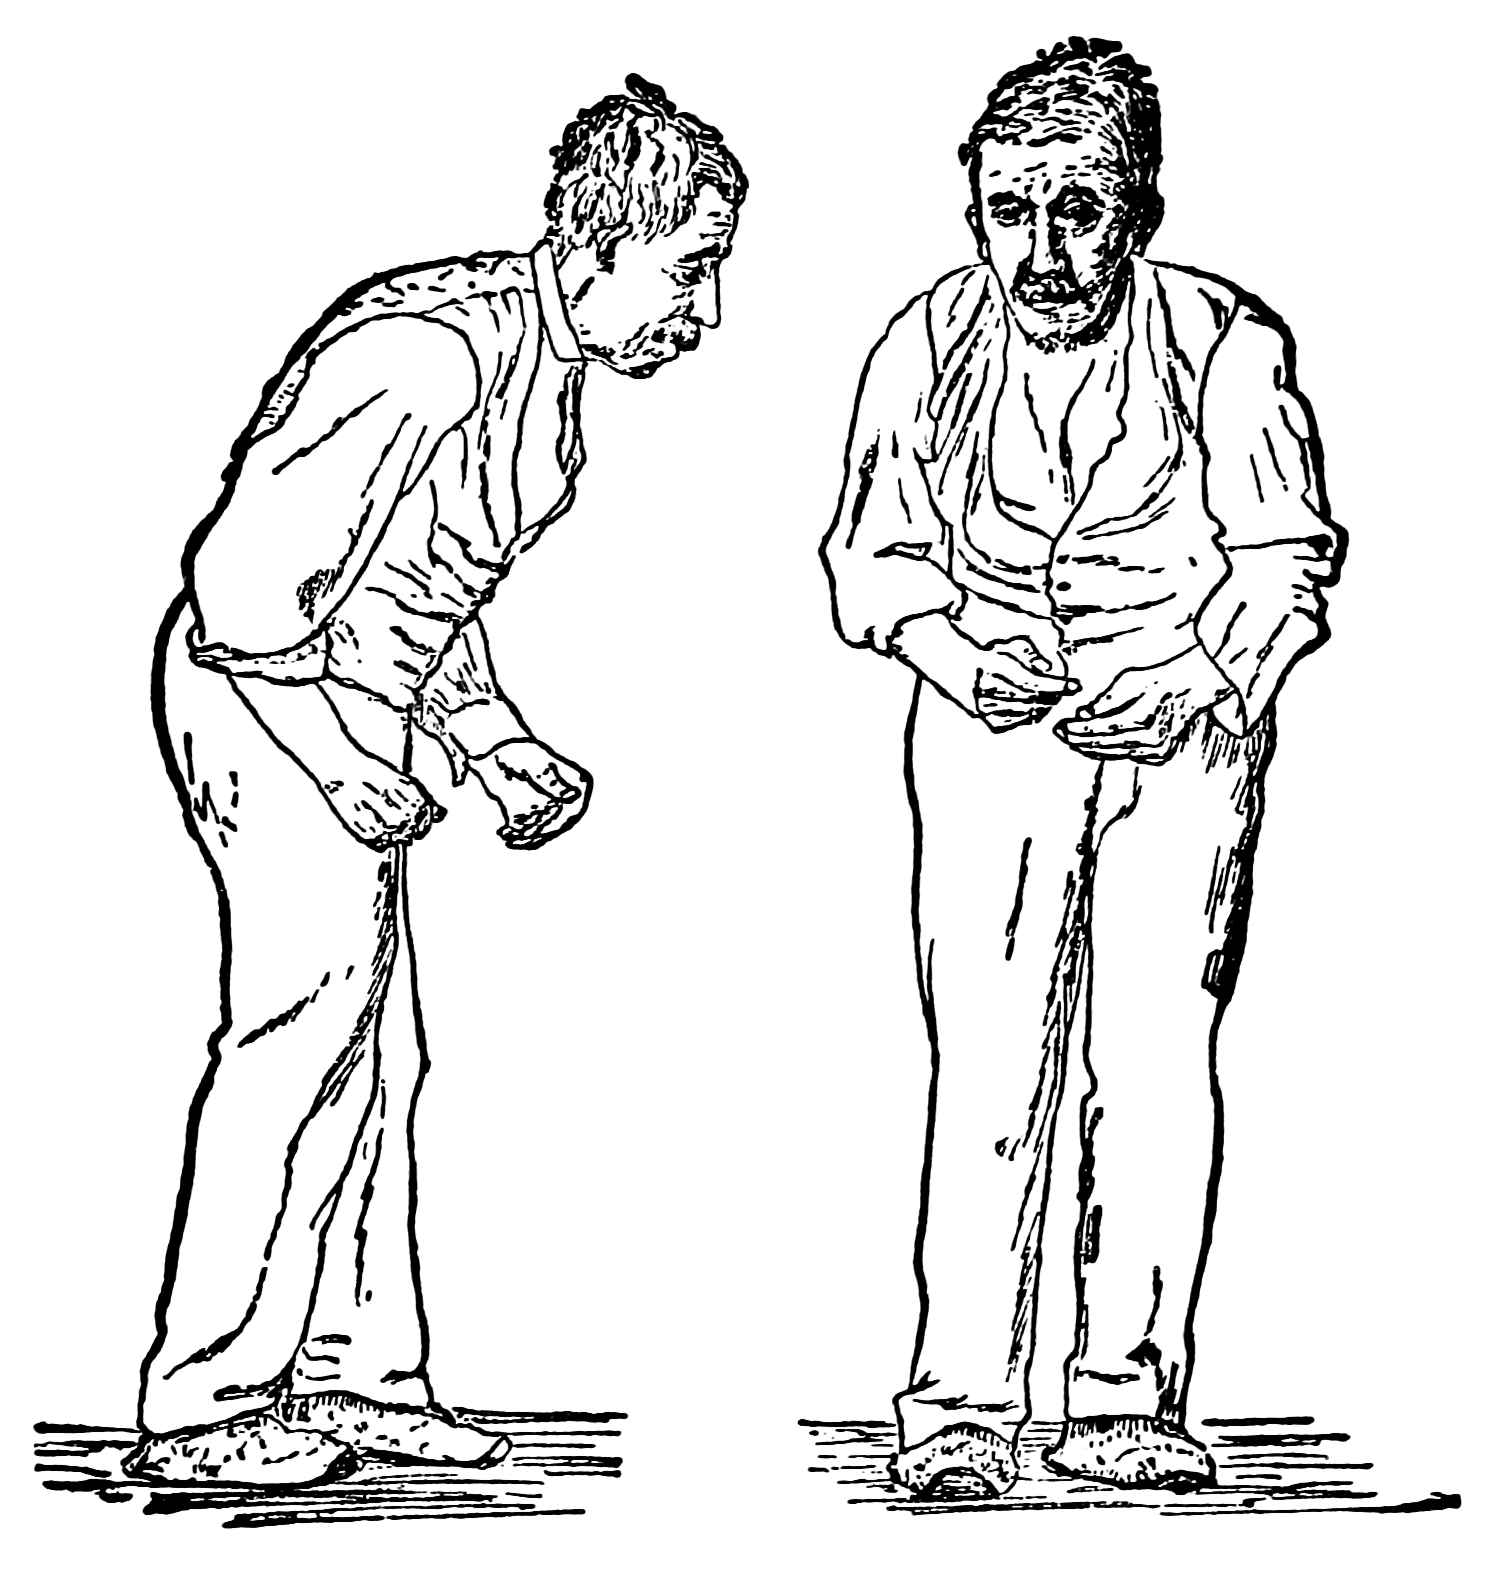 Illustration of man with stooped posture, shown from front and profile views